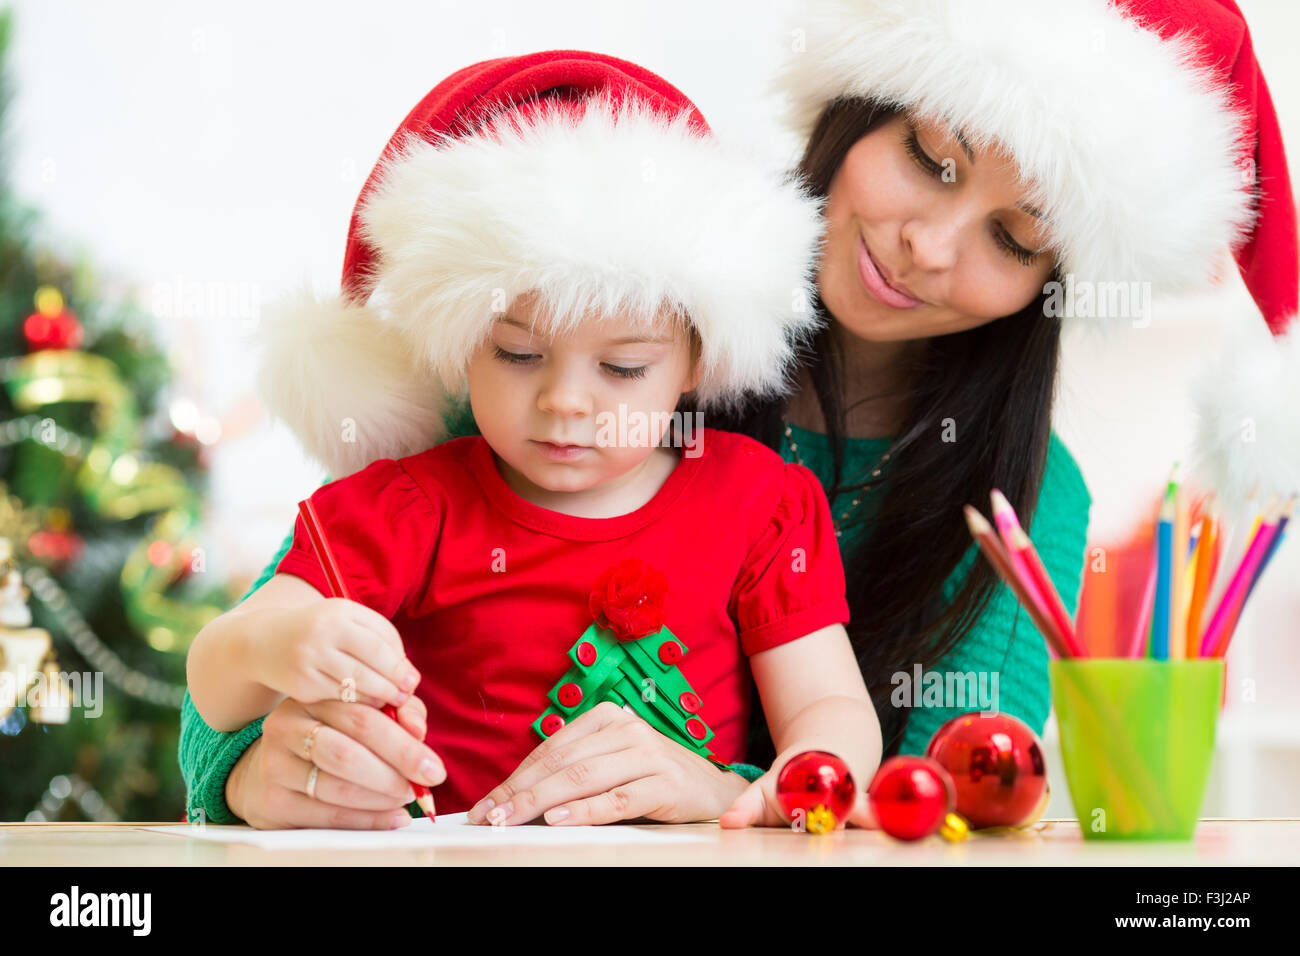 Letter To Santa Stock Photos  Letter To Santa Stock Images  Alamy